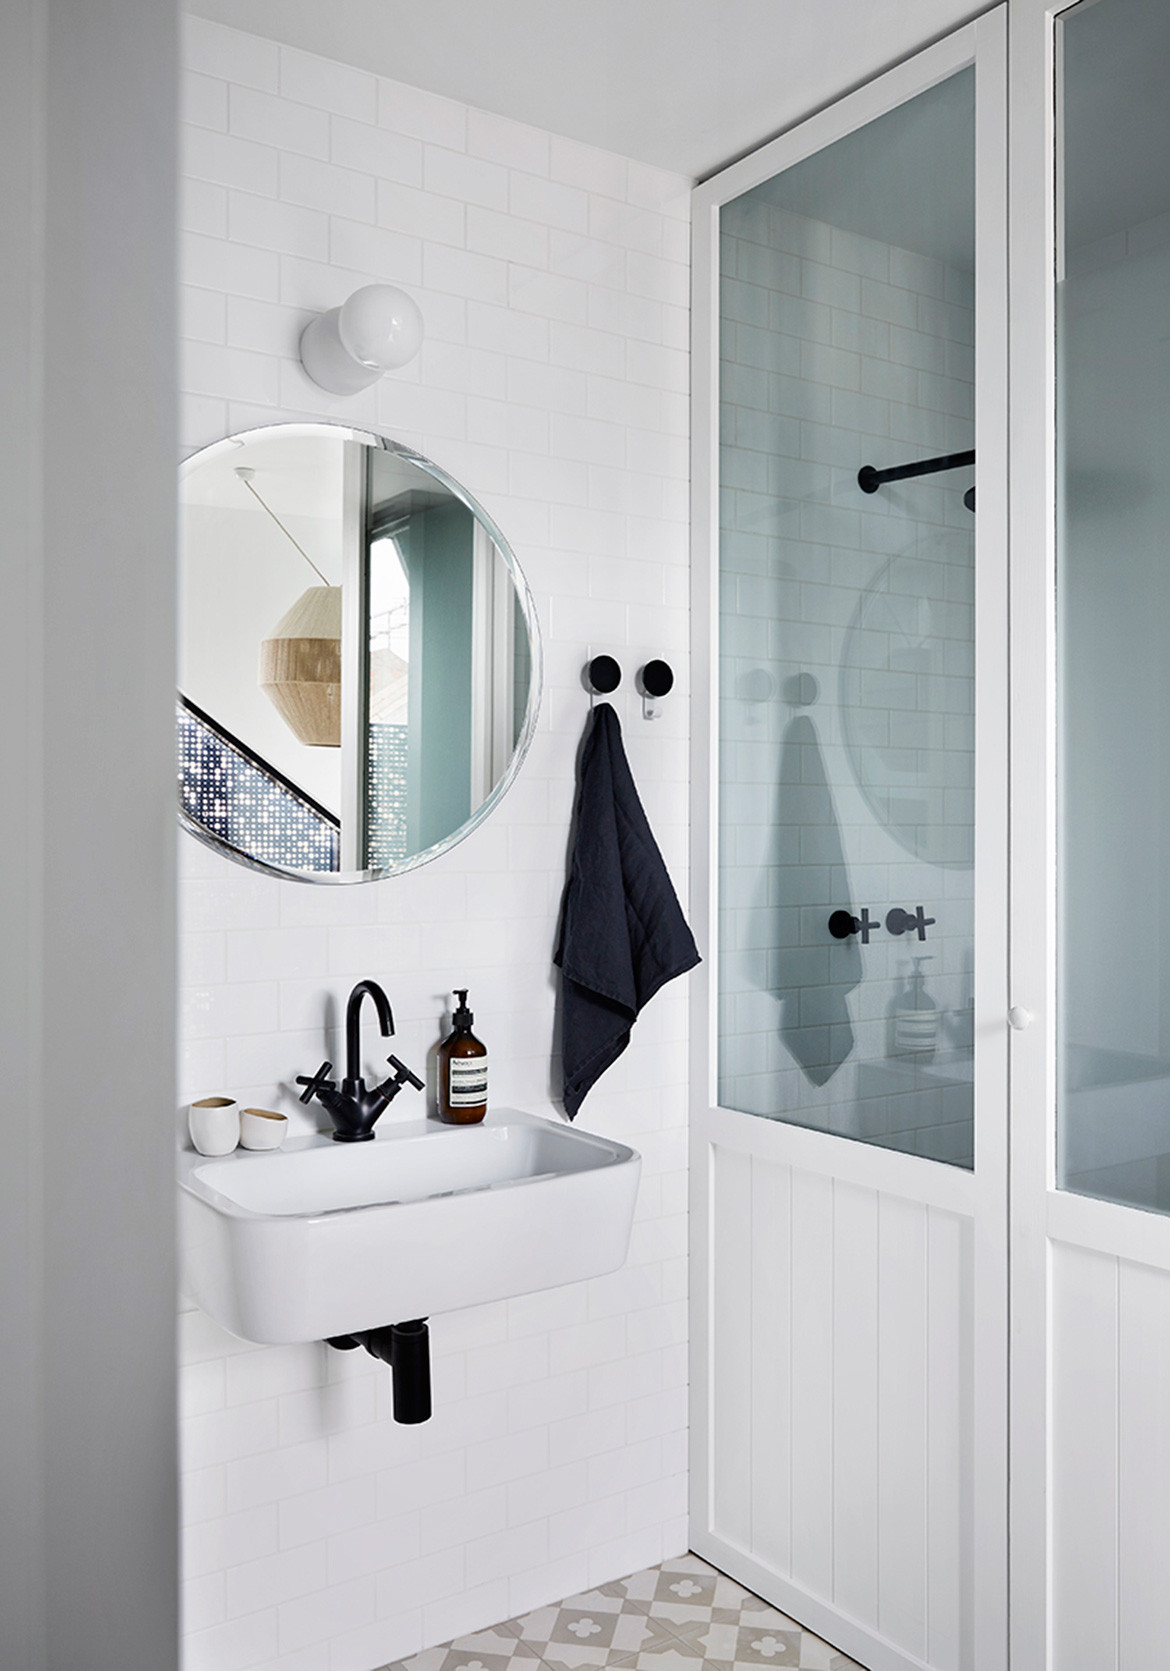 Moor Street Residence Whiting Architects cc Tess Kelly bathroom